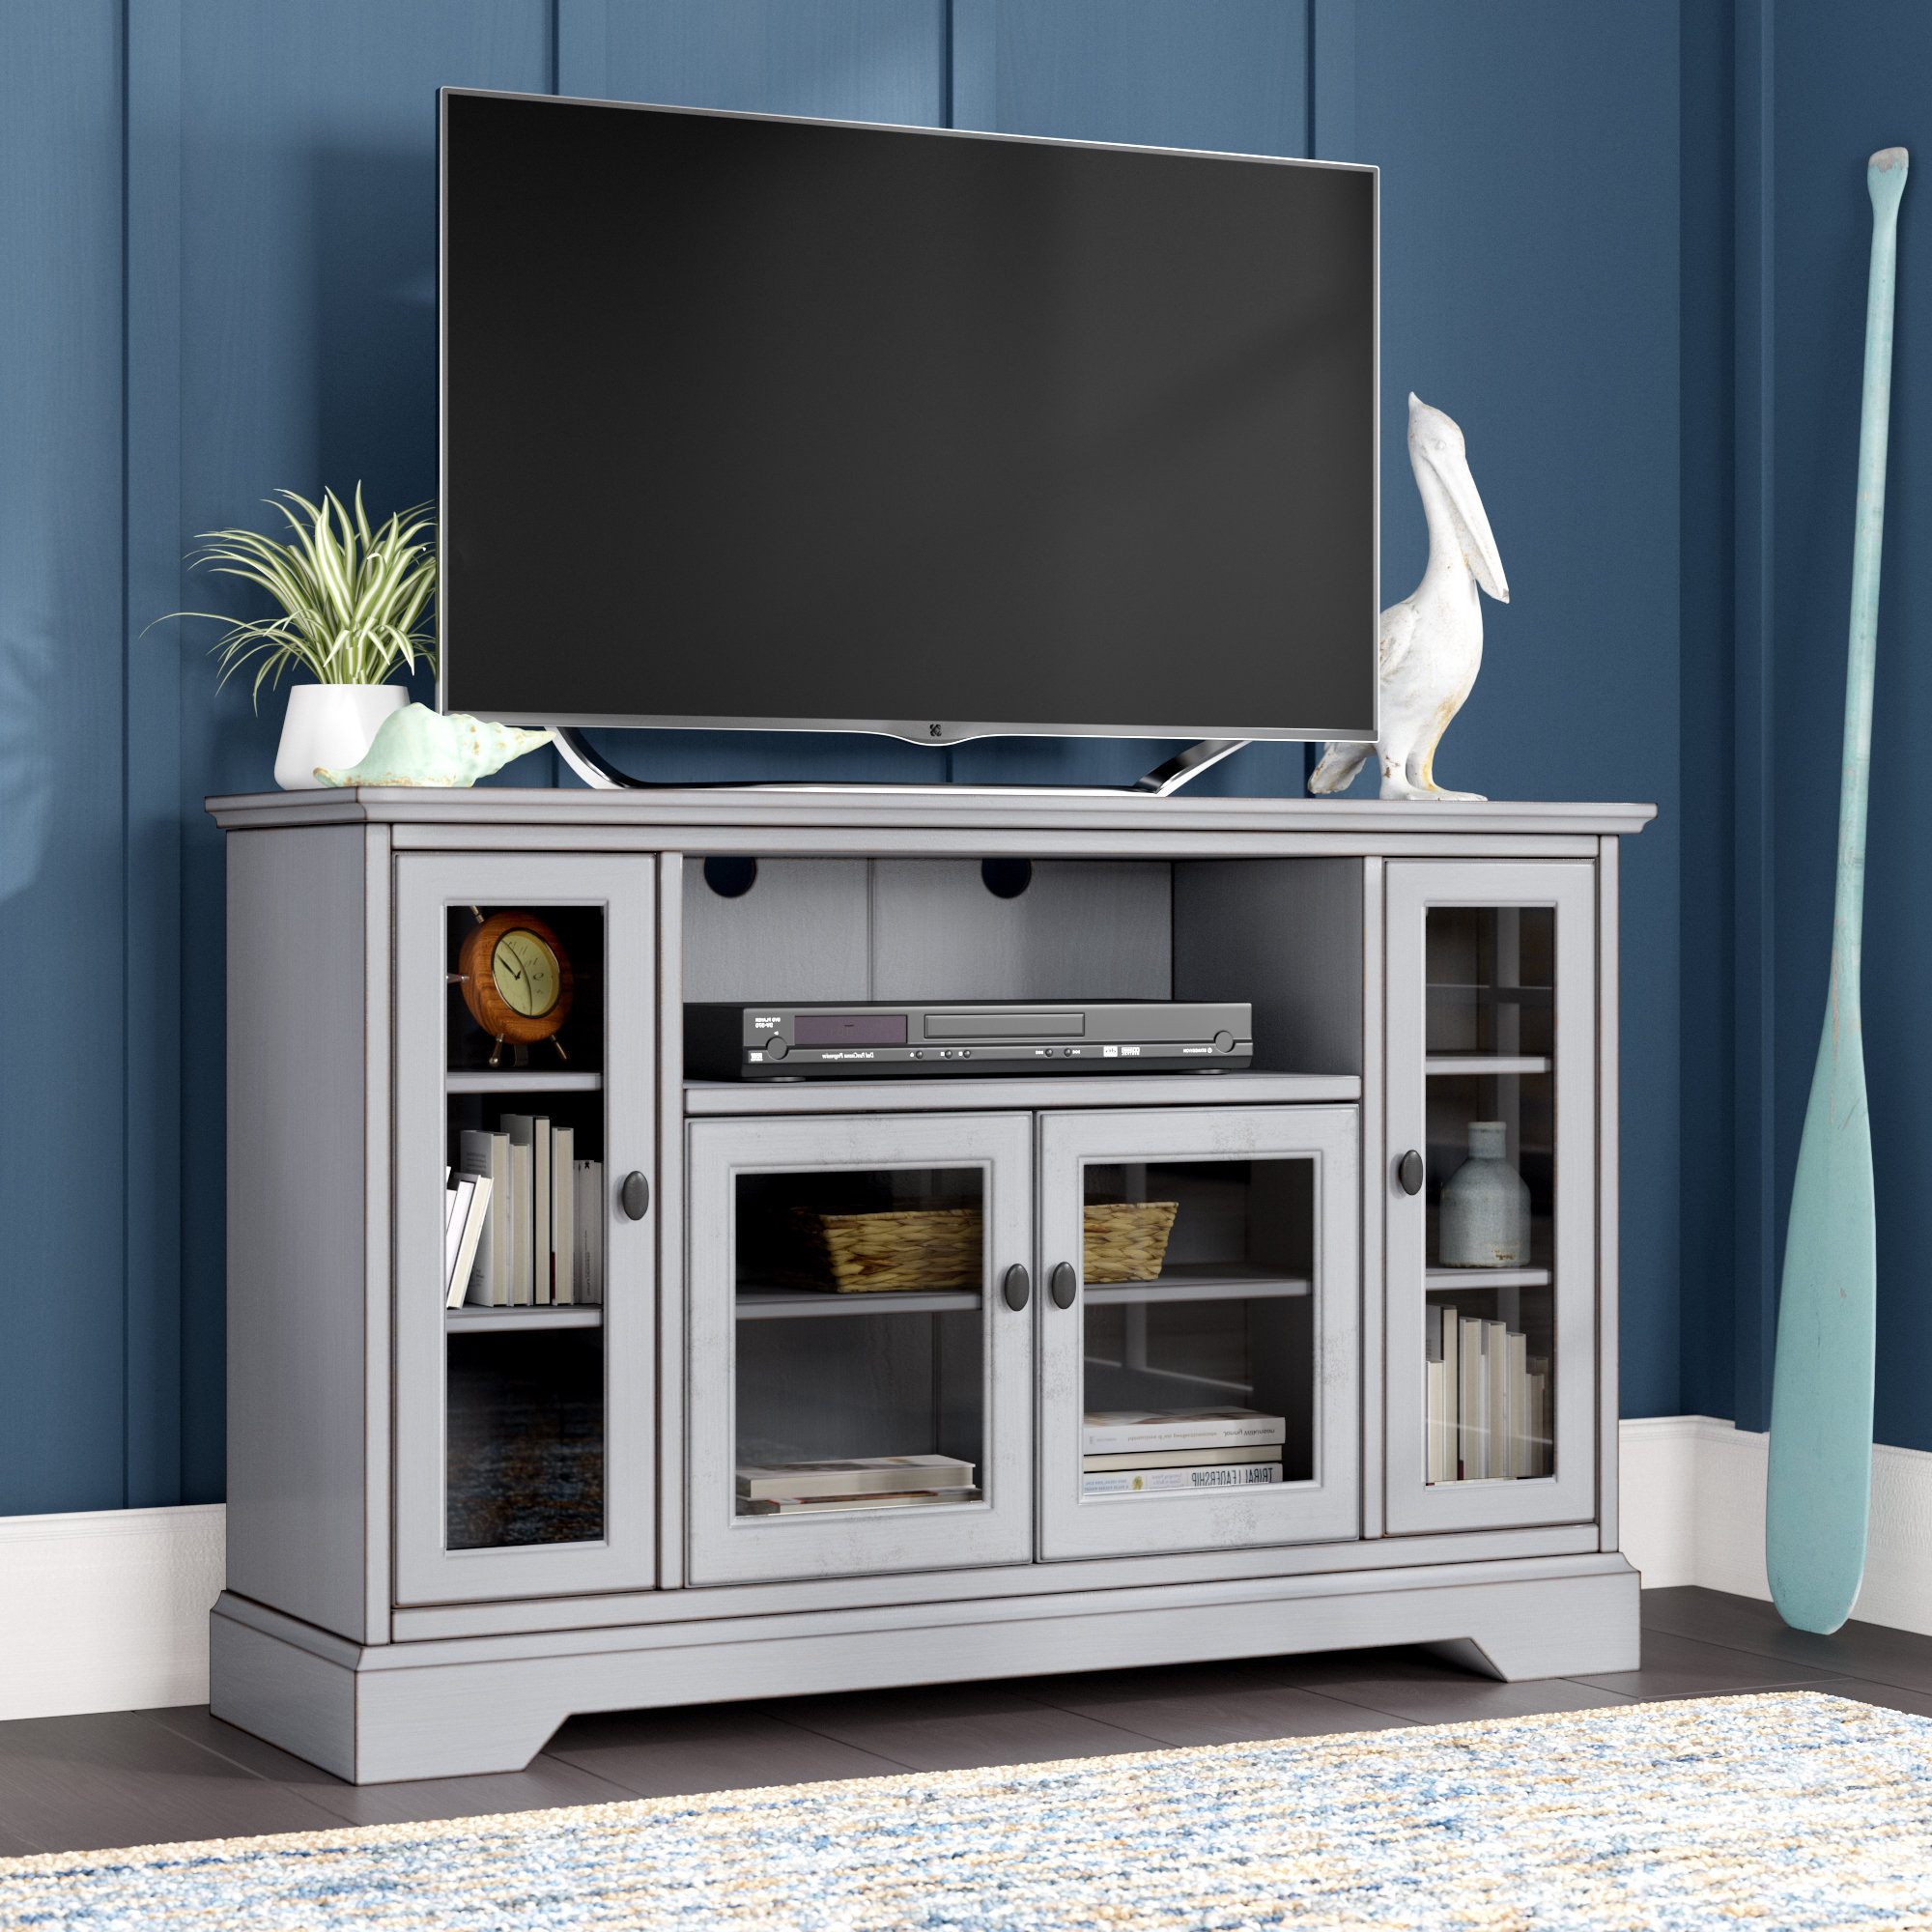 72 Inch Tv Stand | Wayfair Inside Kenzie 72 Inch Open Display Tv Stands (View 3 of 20)